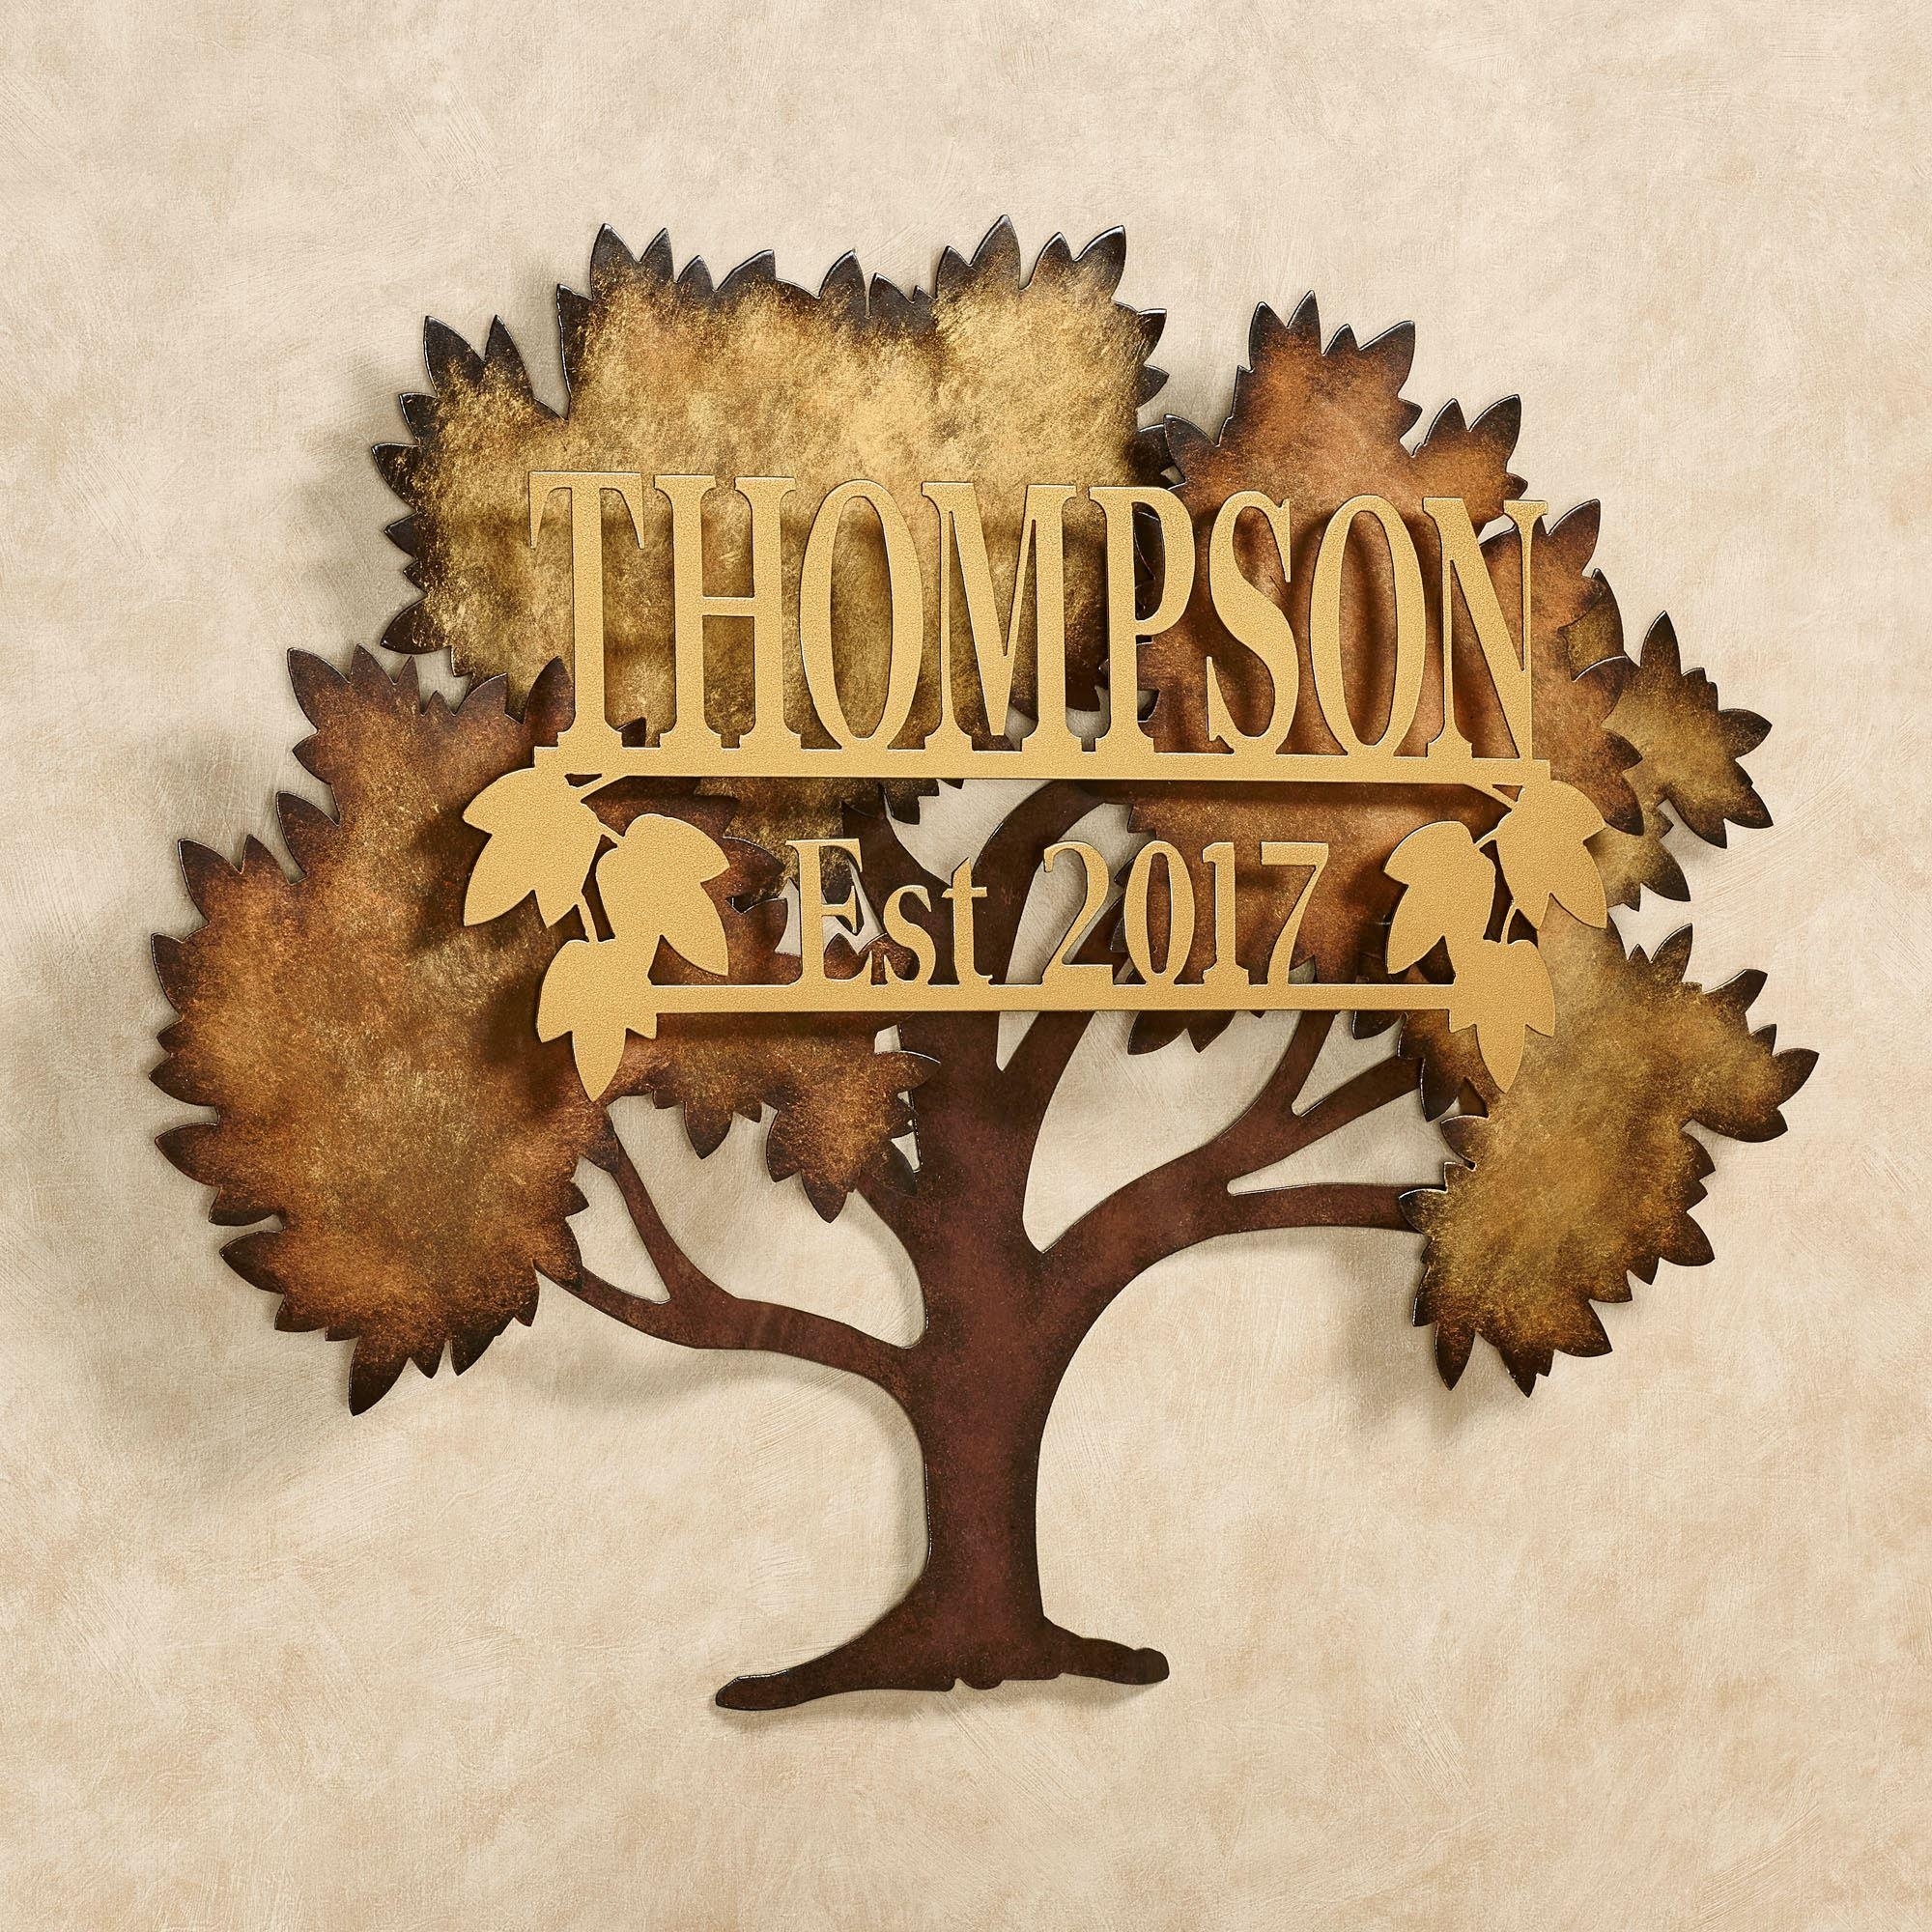 Metal Wall Art Sculptures | Touch Of Class Throughout Tree Wall Art Sculpture (Image 11 of 20)